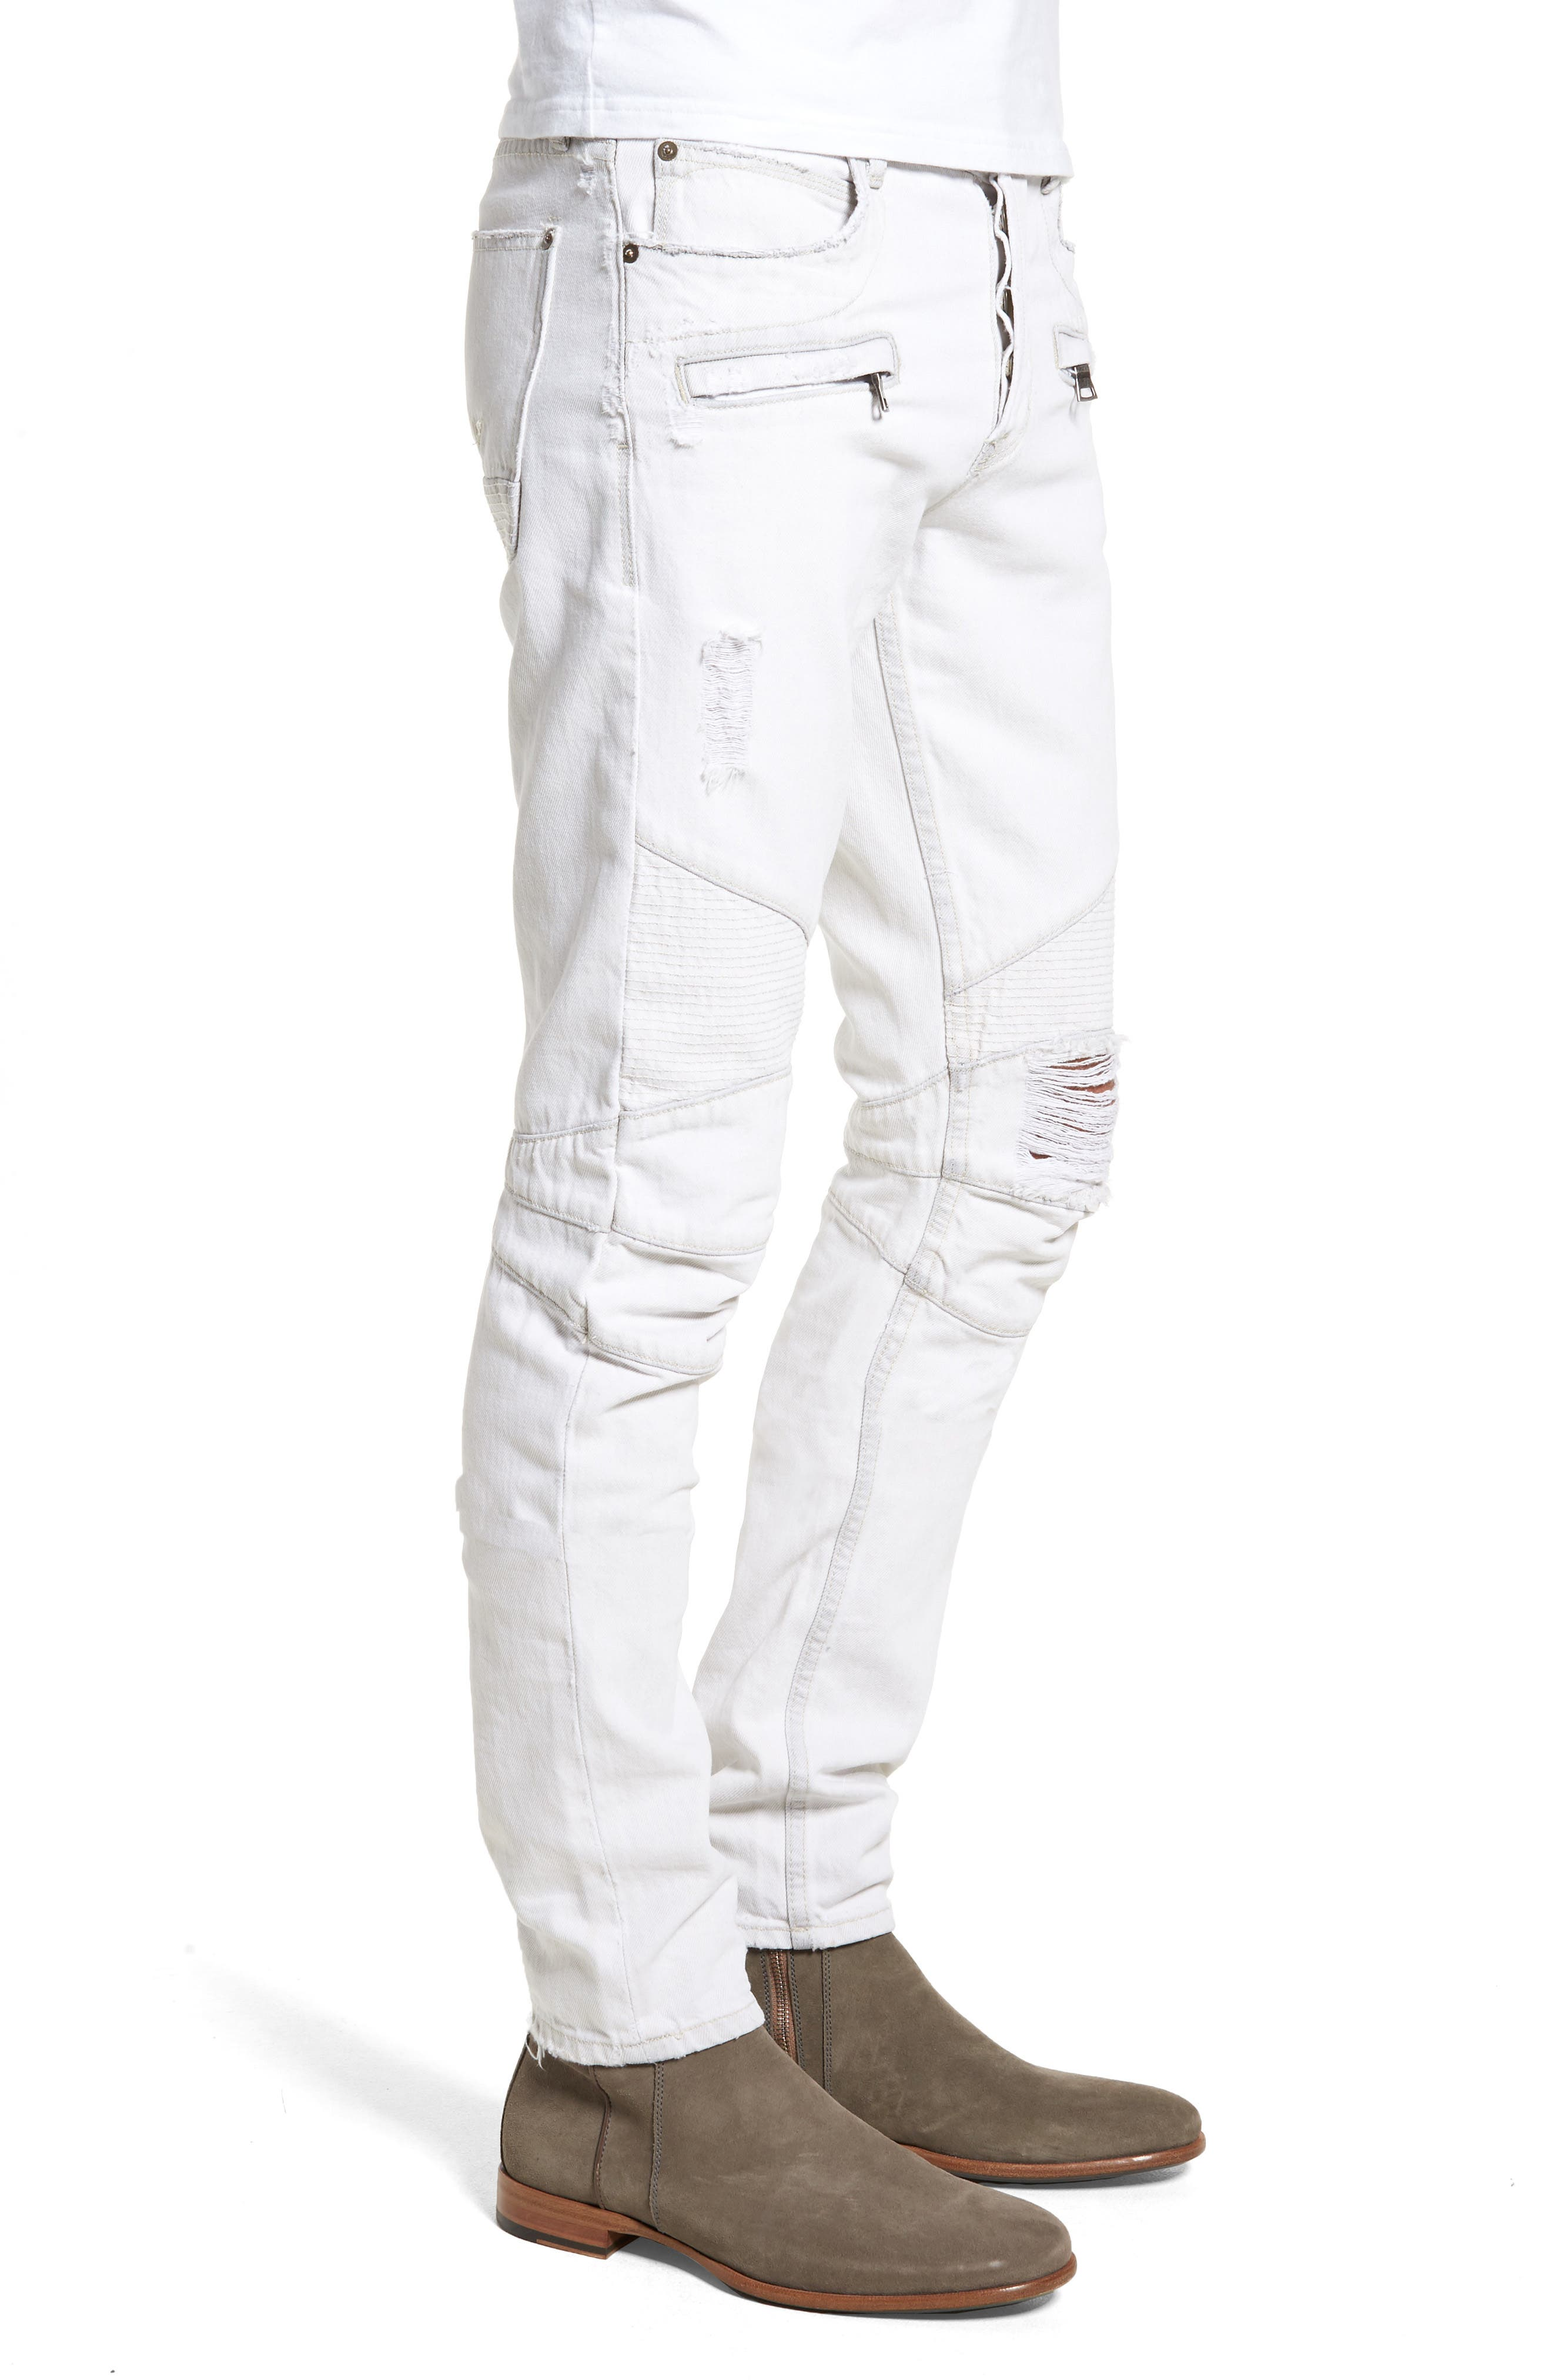 Blinder Biker Skinny Fit Moto Jeans,                             Alternate thumbnail 3, color,                             Extracted White